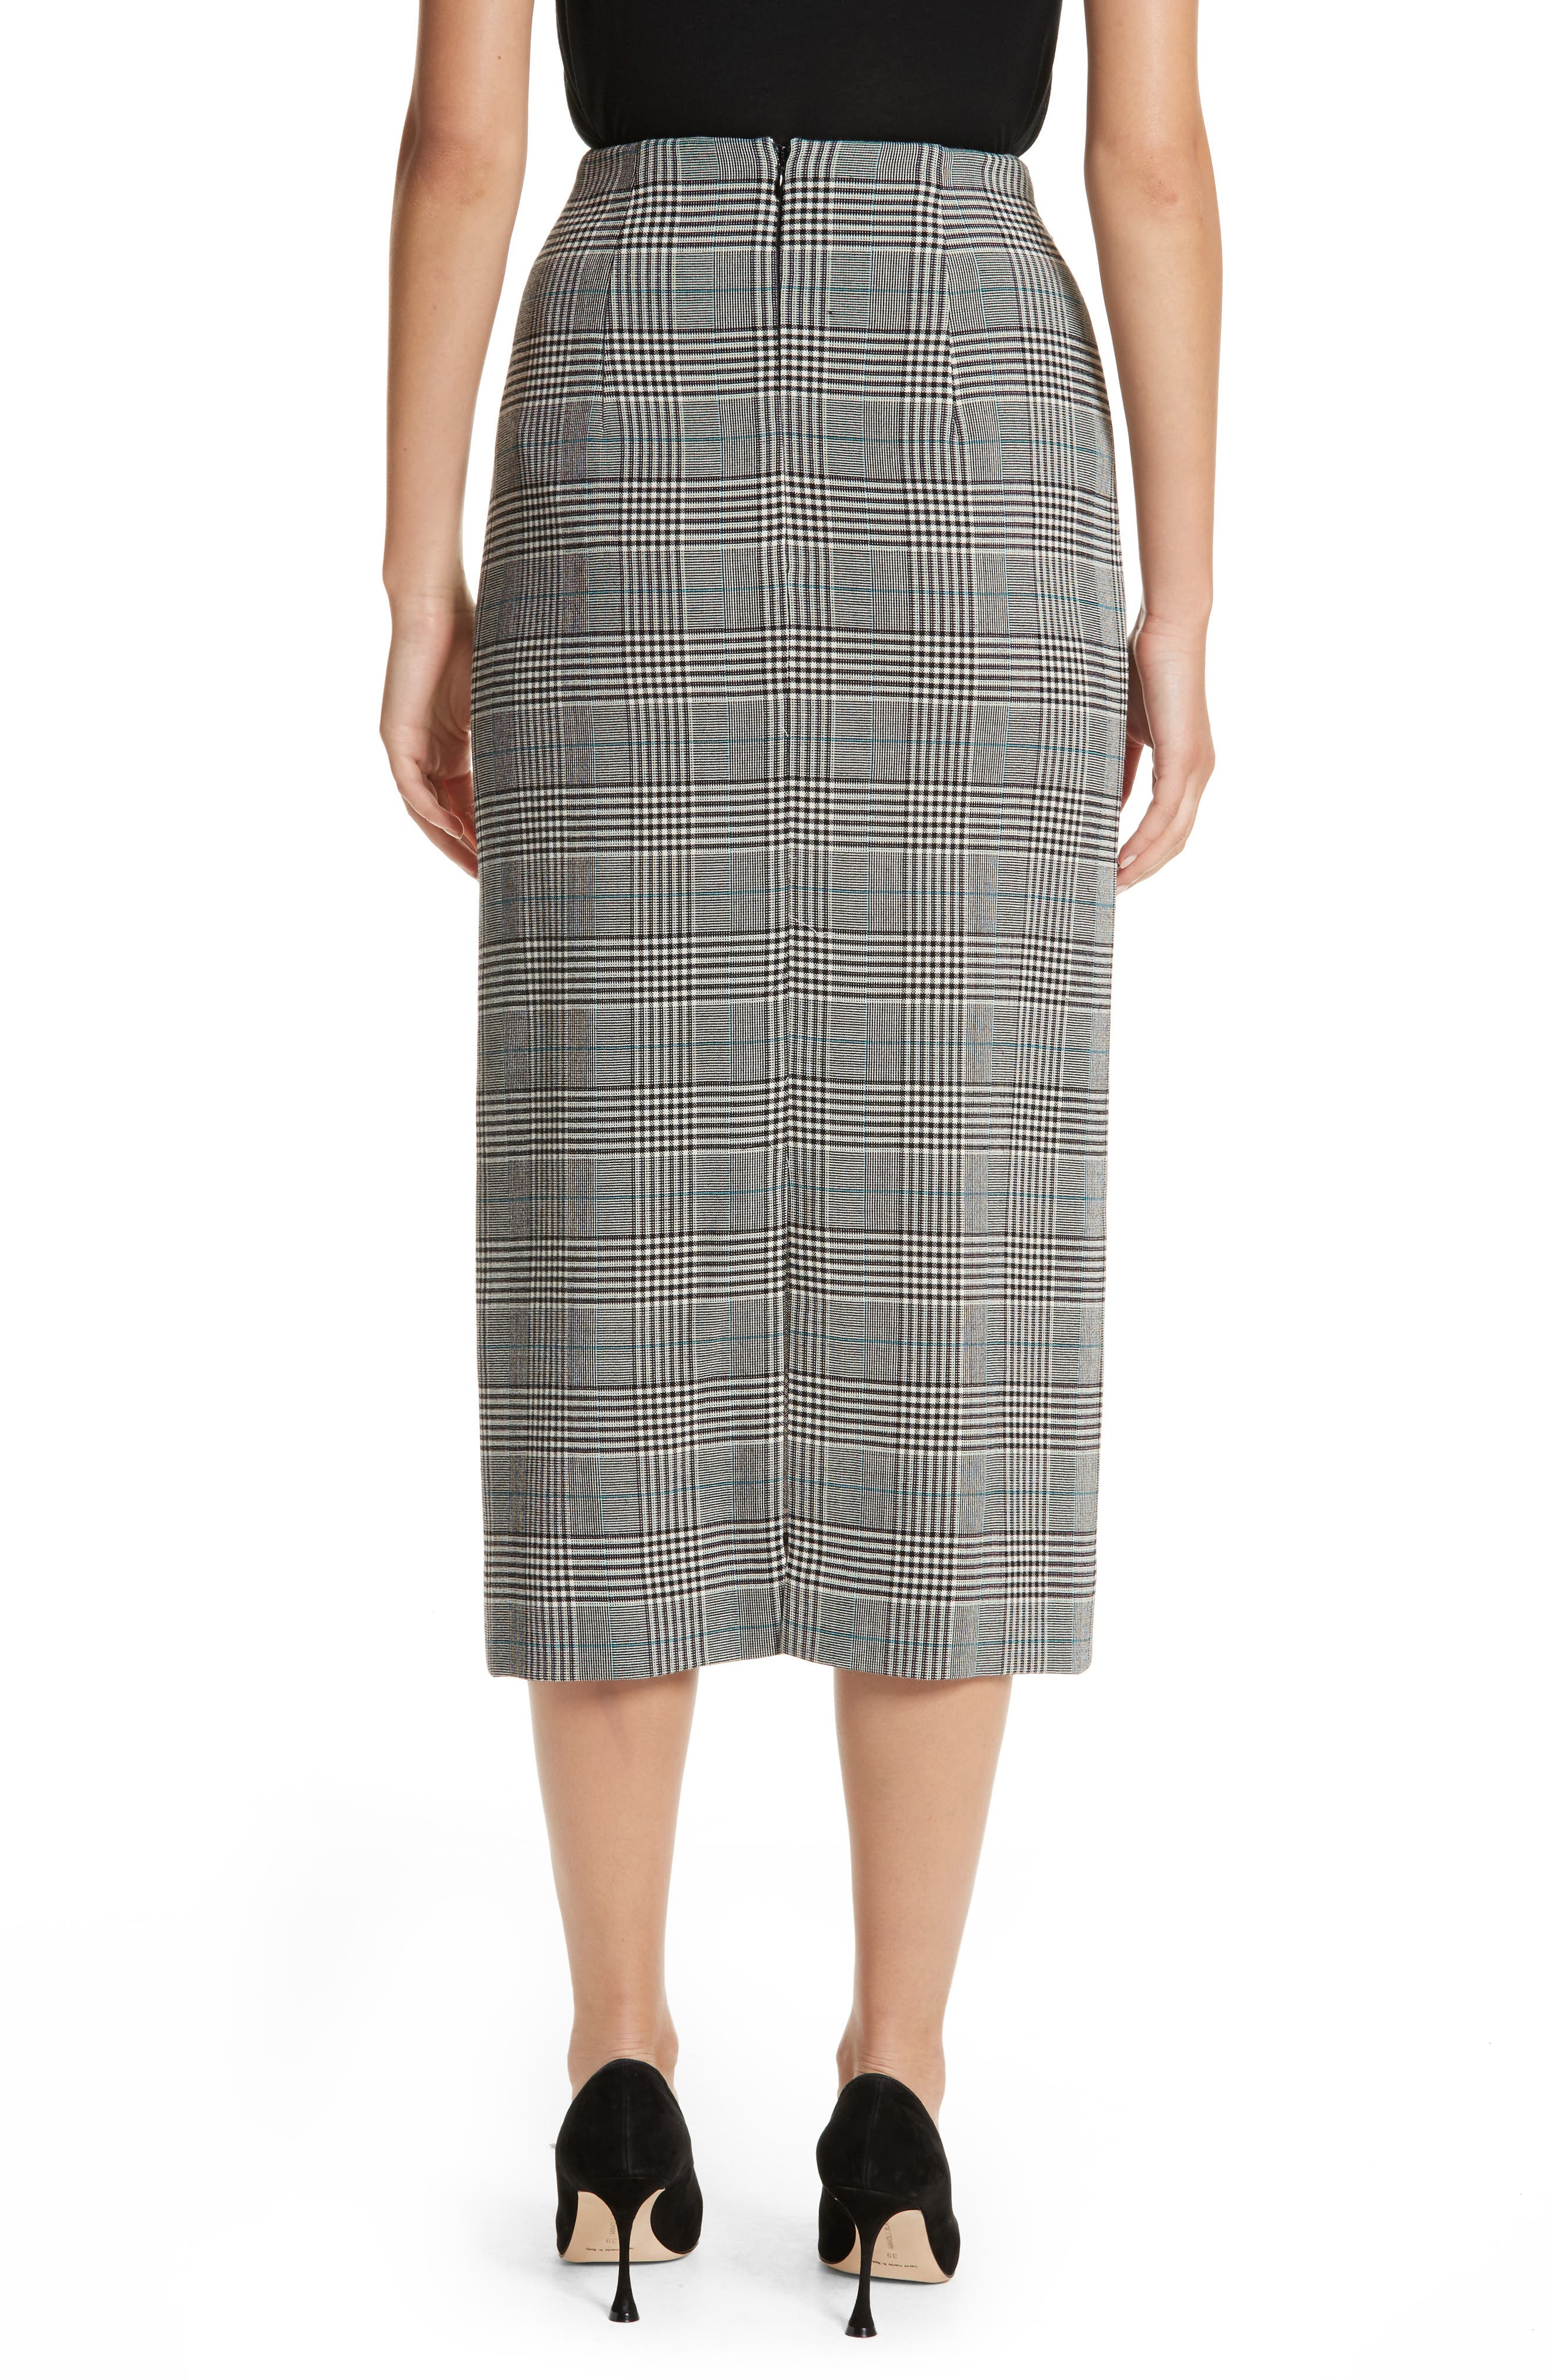 Prince of Wales High Waist Pencil Skirt,                             Alternate thumbnail 2, color,                             001